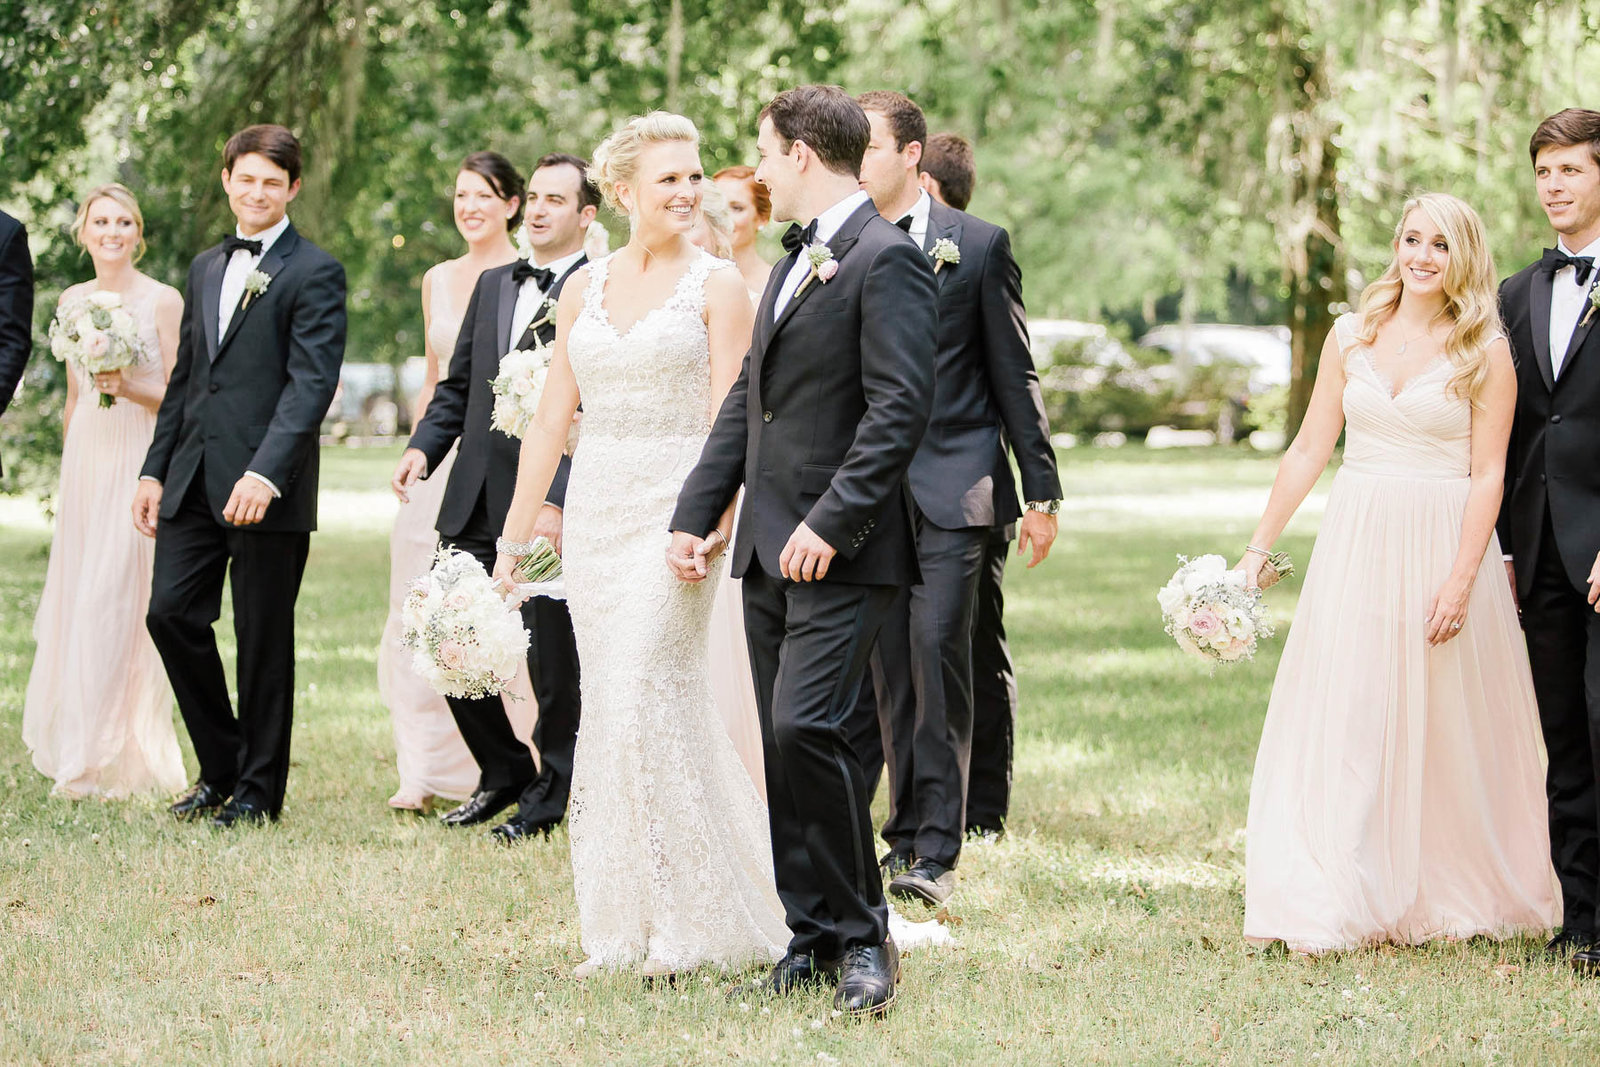 wedding-party-magnolia-plantation-charleston-sc-lowcountry-wedding-kate-timbers-photography2147